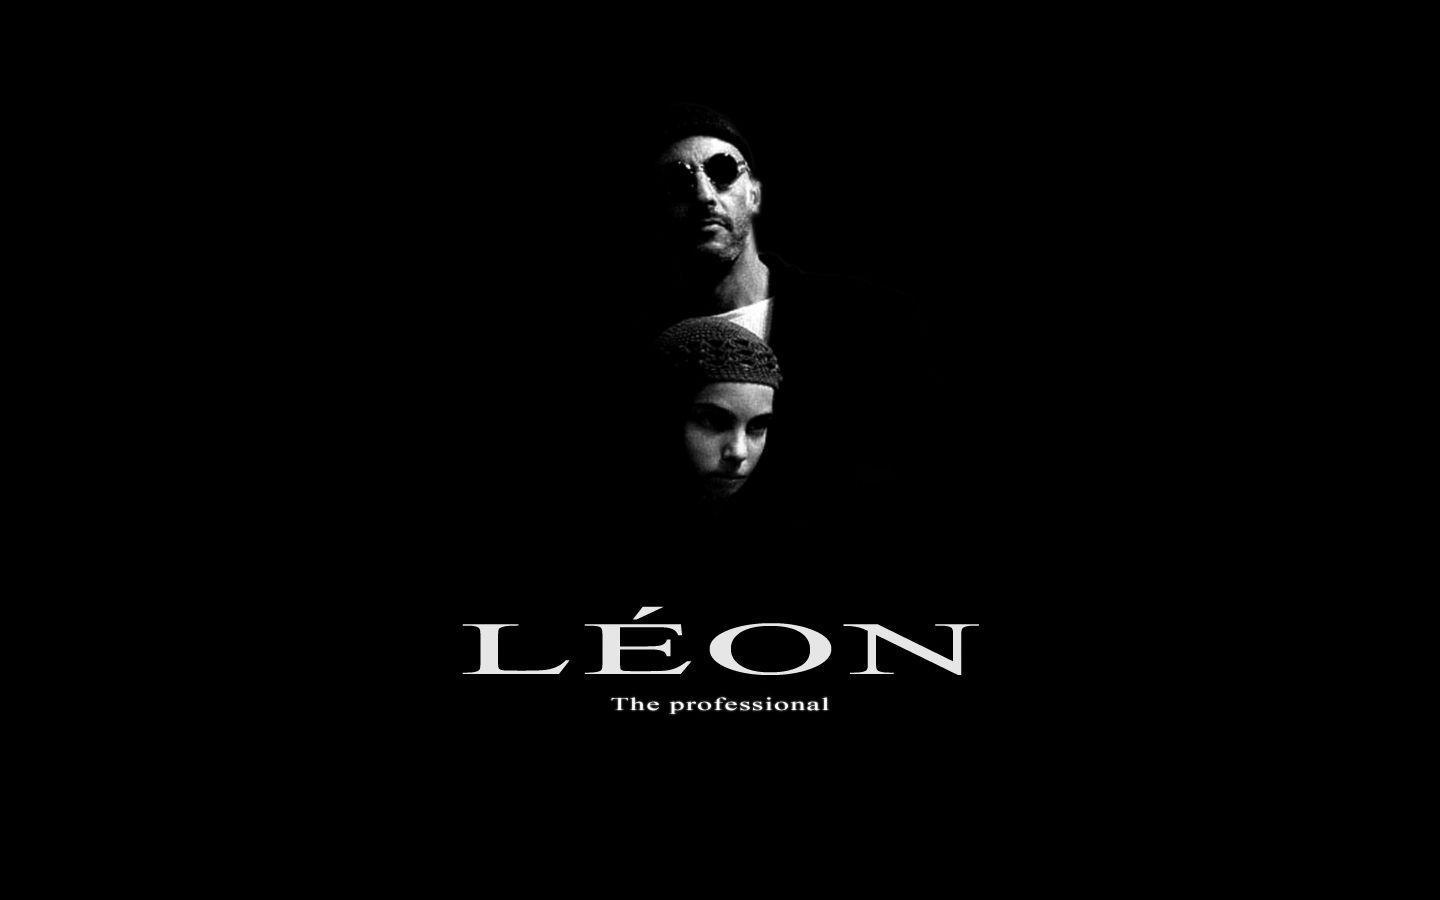 leon the professional full movie online free